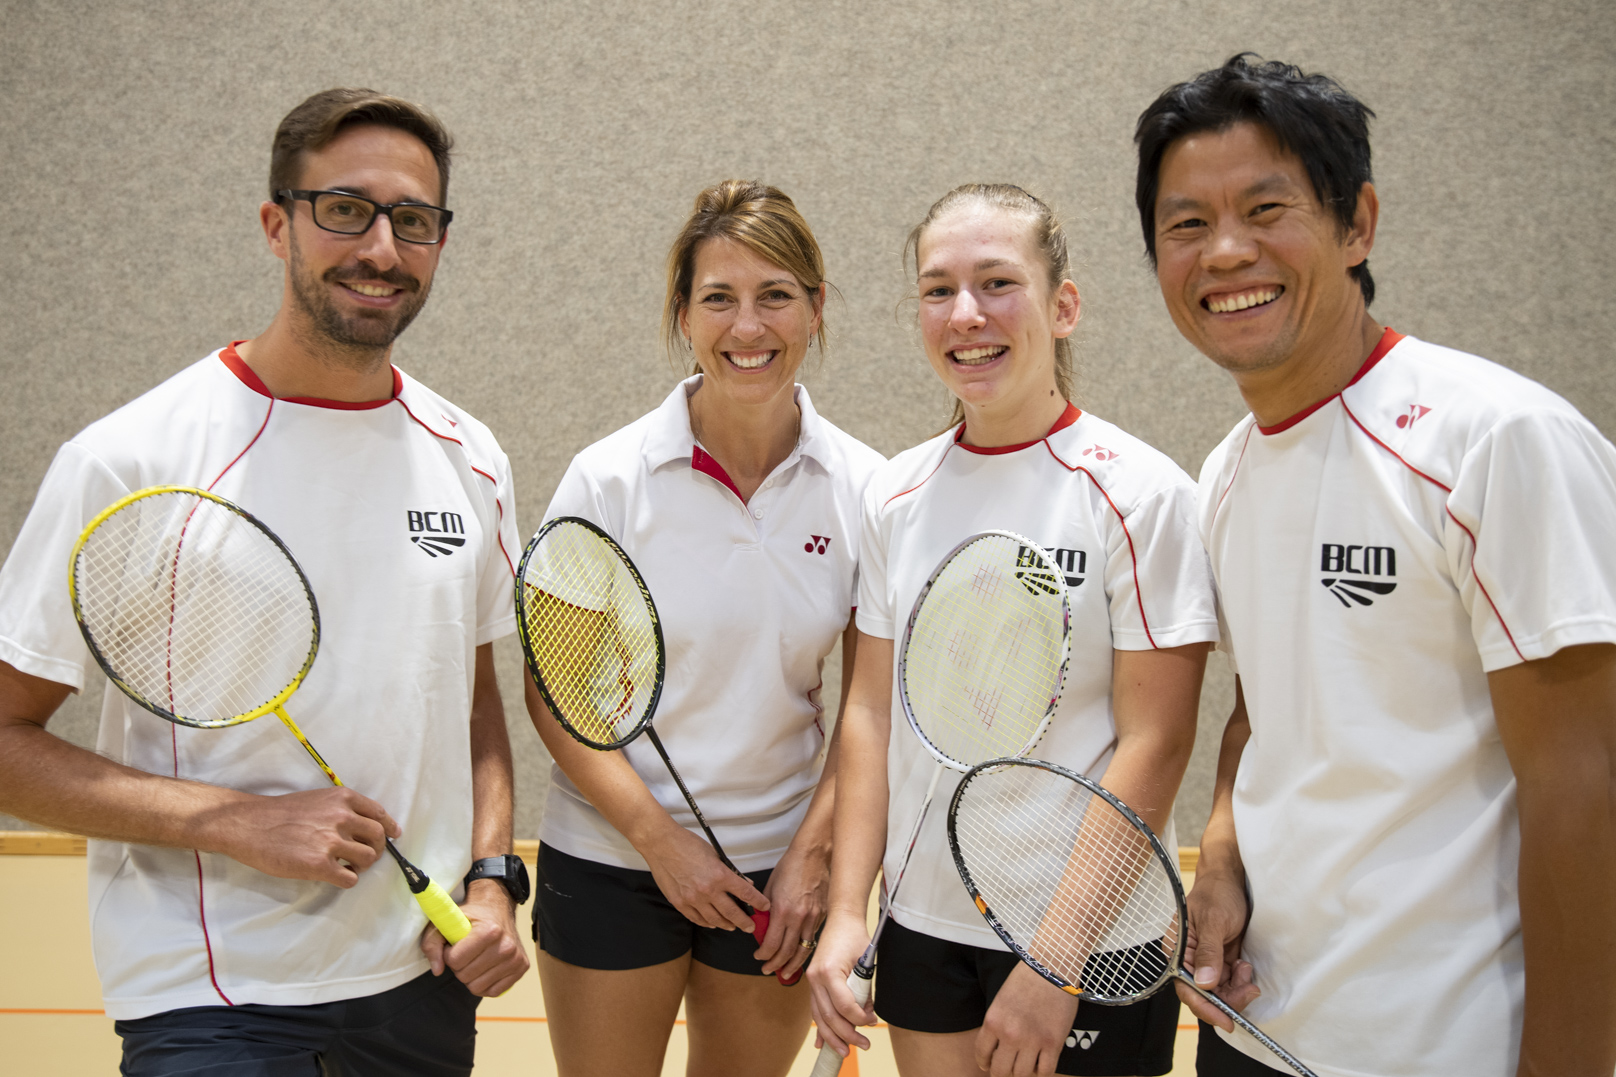 Le Badminton Club Morges reprend fort